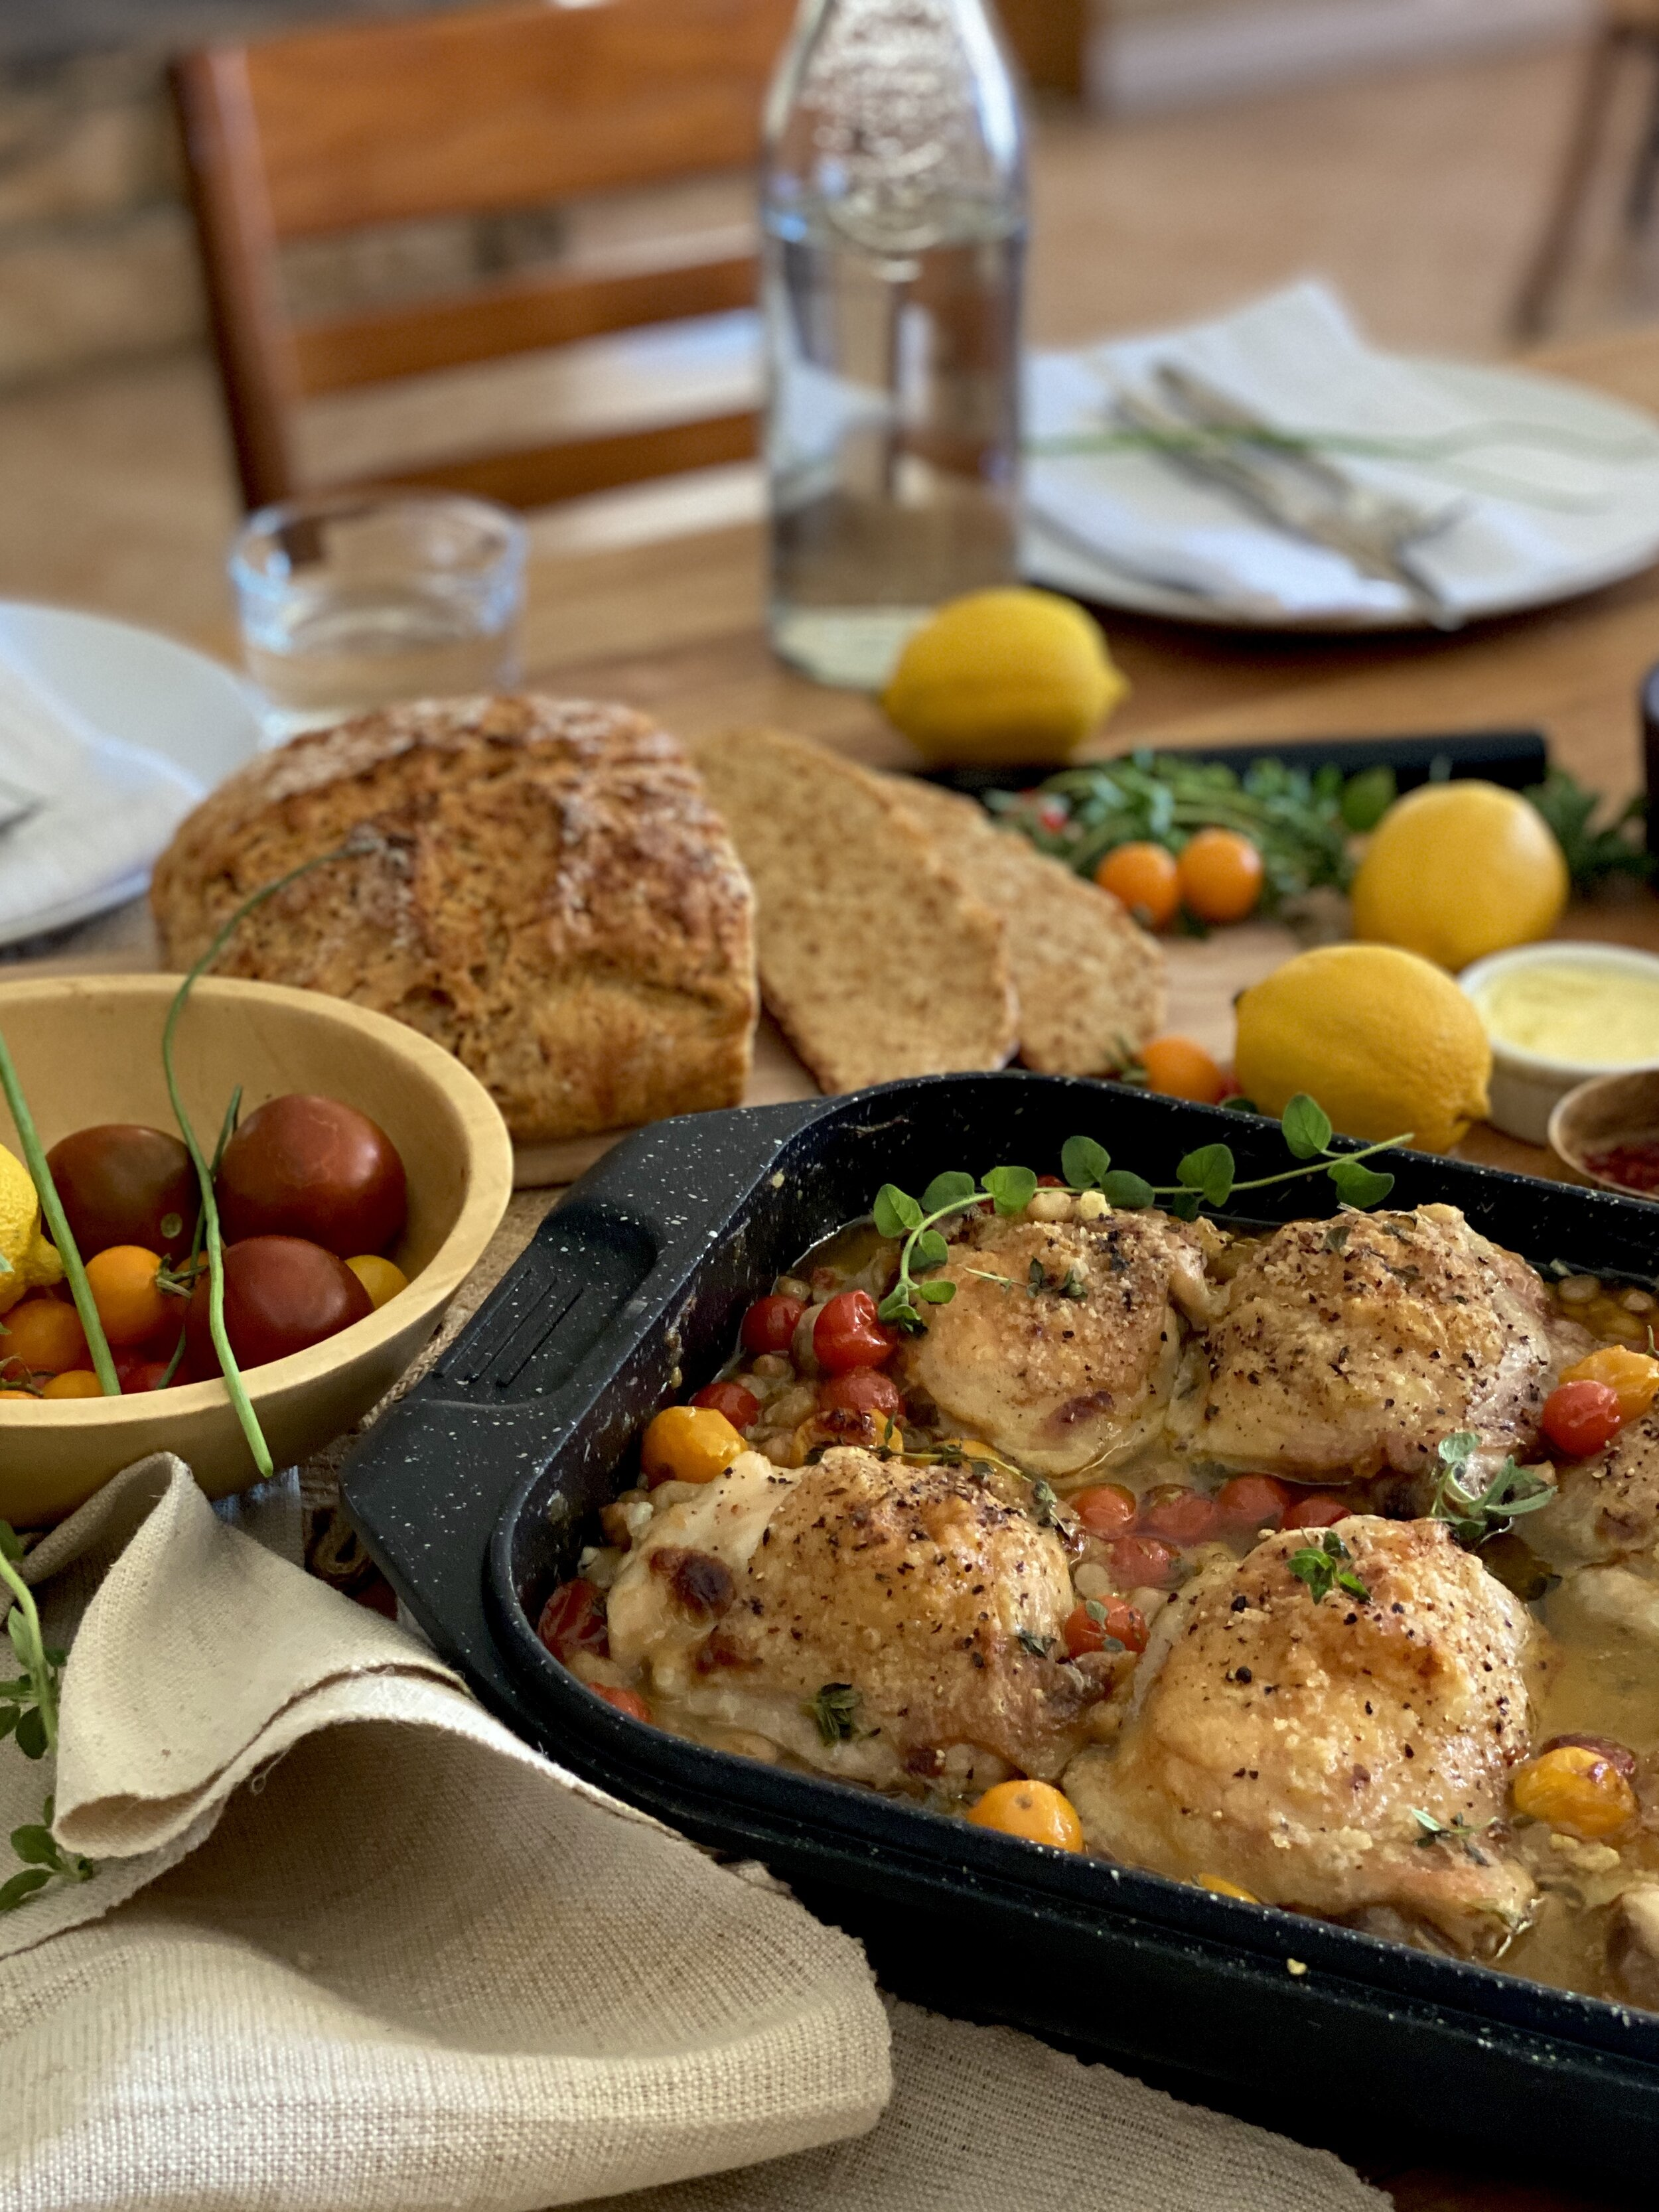 Tender bone in thighs cuddled up next to white beans, tomatoes and fragrant herbs. Serve that alongside a country crusty loaf of bread and dinner is on the table.